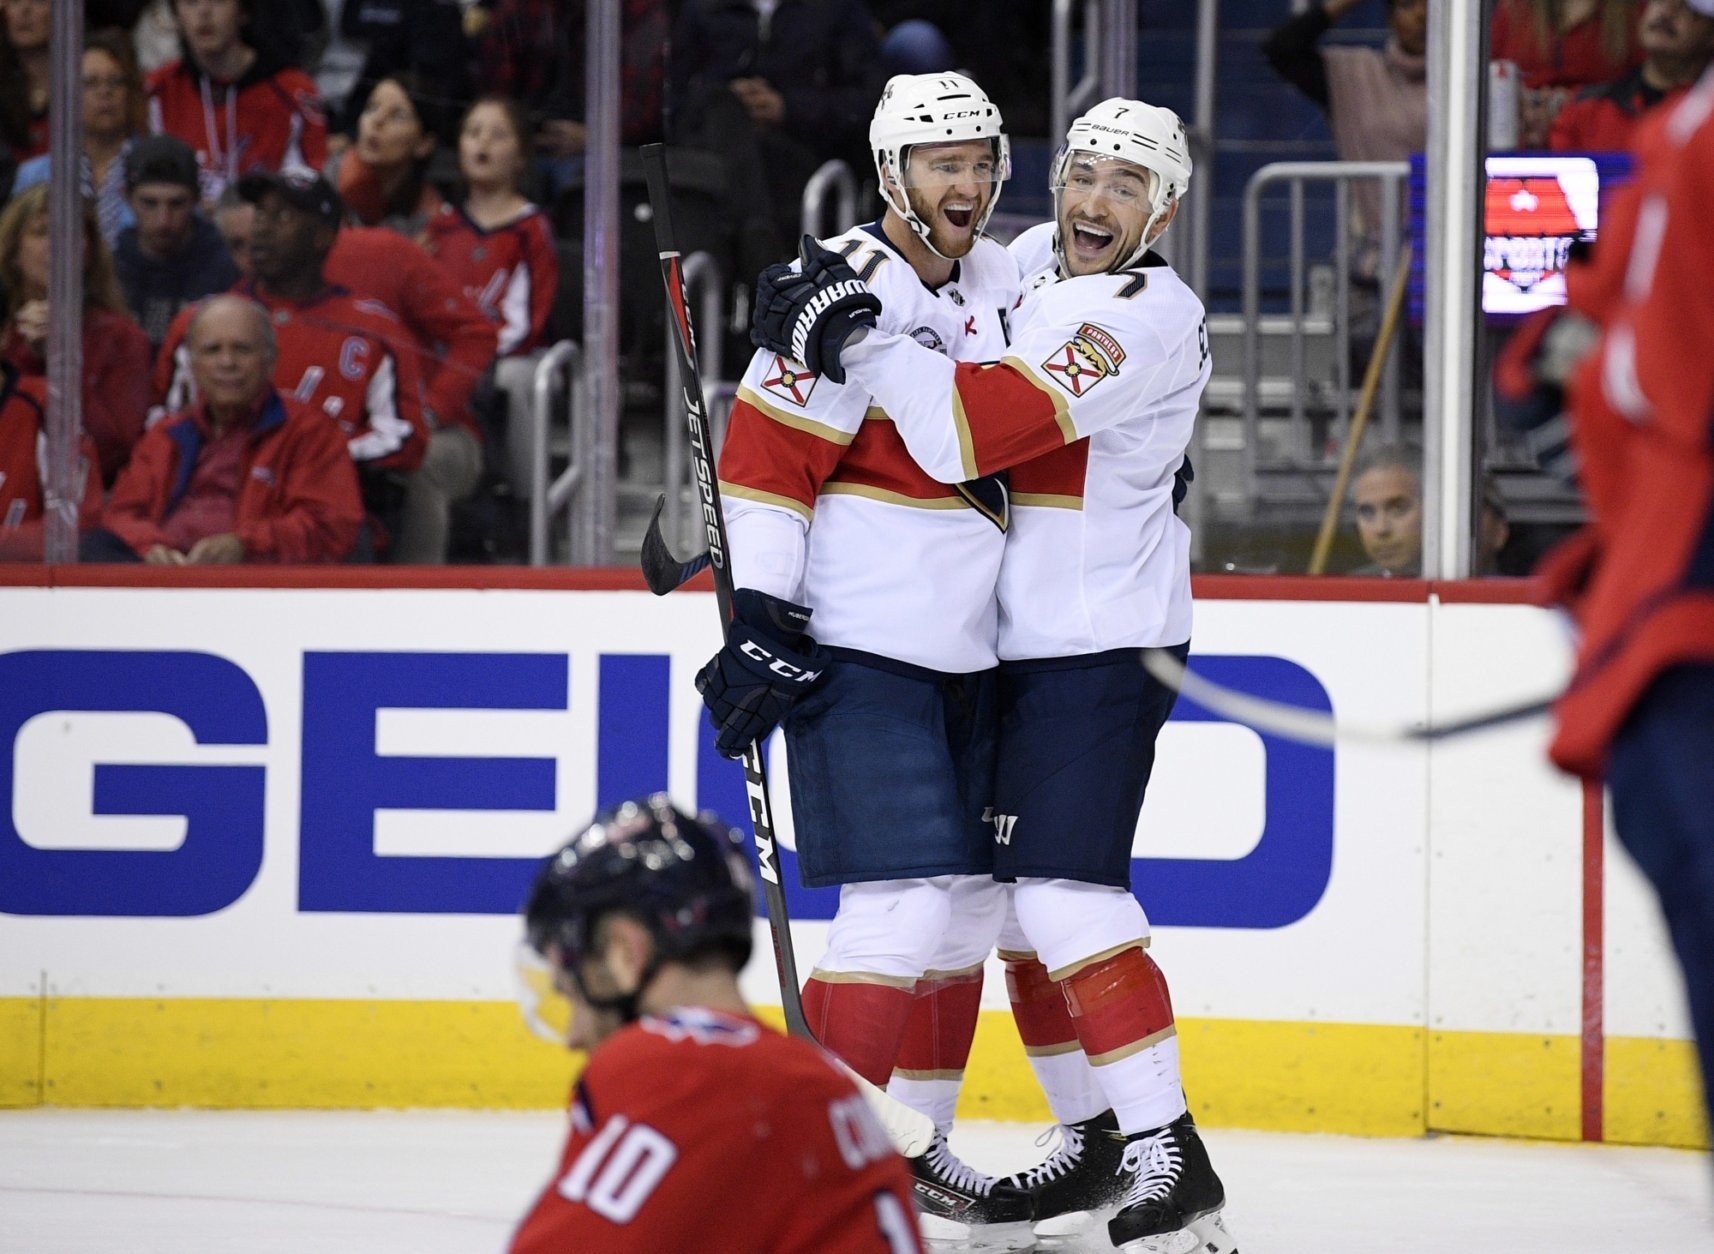 Florida Panthers center Colton Sceviour (7) celebrates his goal with left wing Jonathan Huberdeau (11) during the first period of an NHL hockey game as Washington Capitals right wing Brett Connolly (10) sits on the ice, Friday, Oct. 19, 2018, in Washington. (AP Photo/Nick Wass)